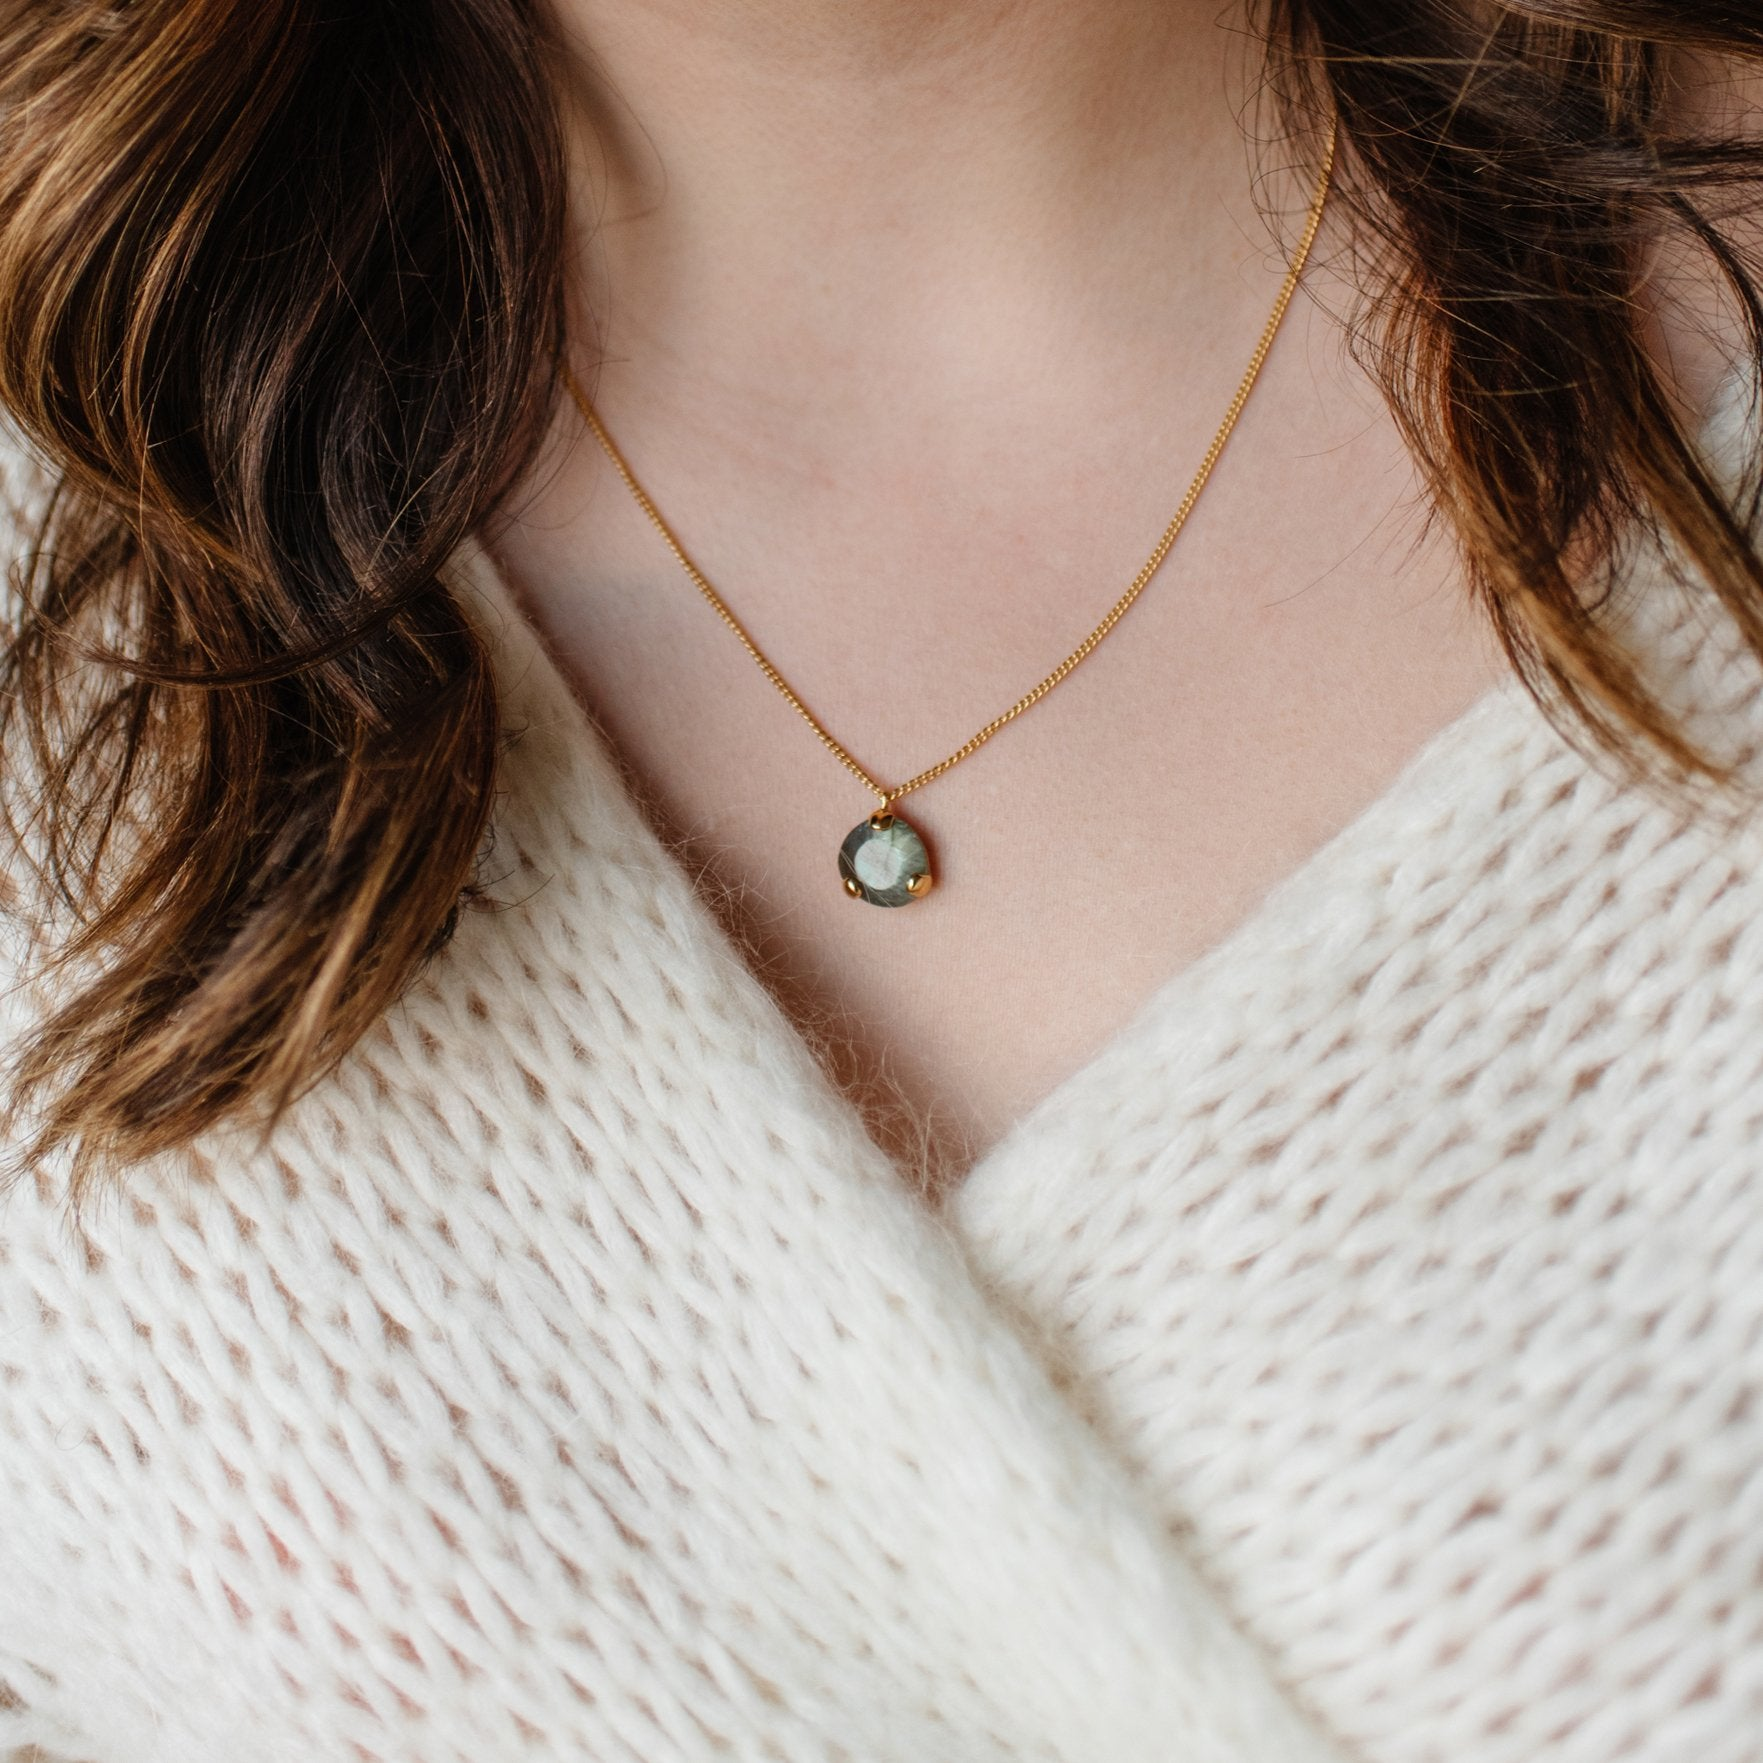 Fearless Mini Pendant Necklace - Labradorite & Gold - SO PRETTY CARA COTTER